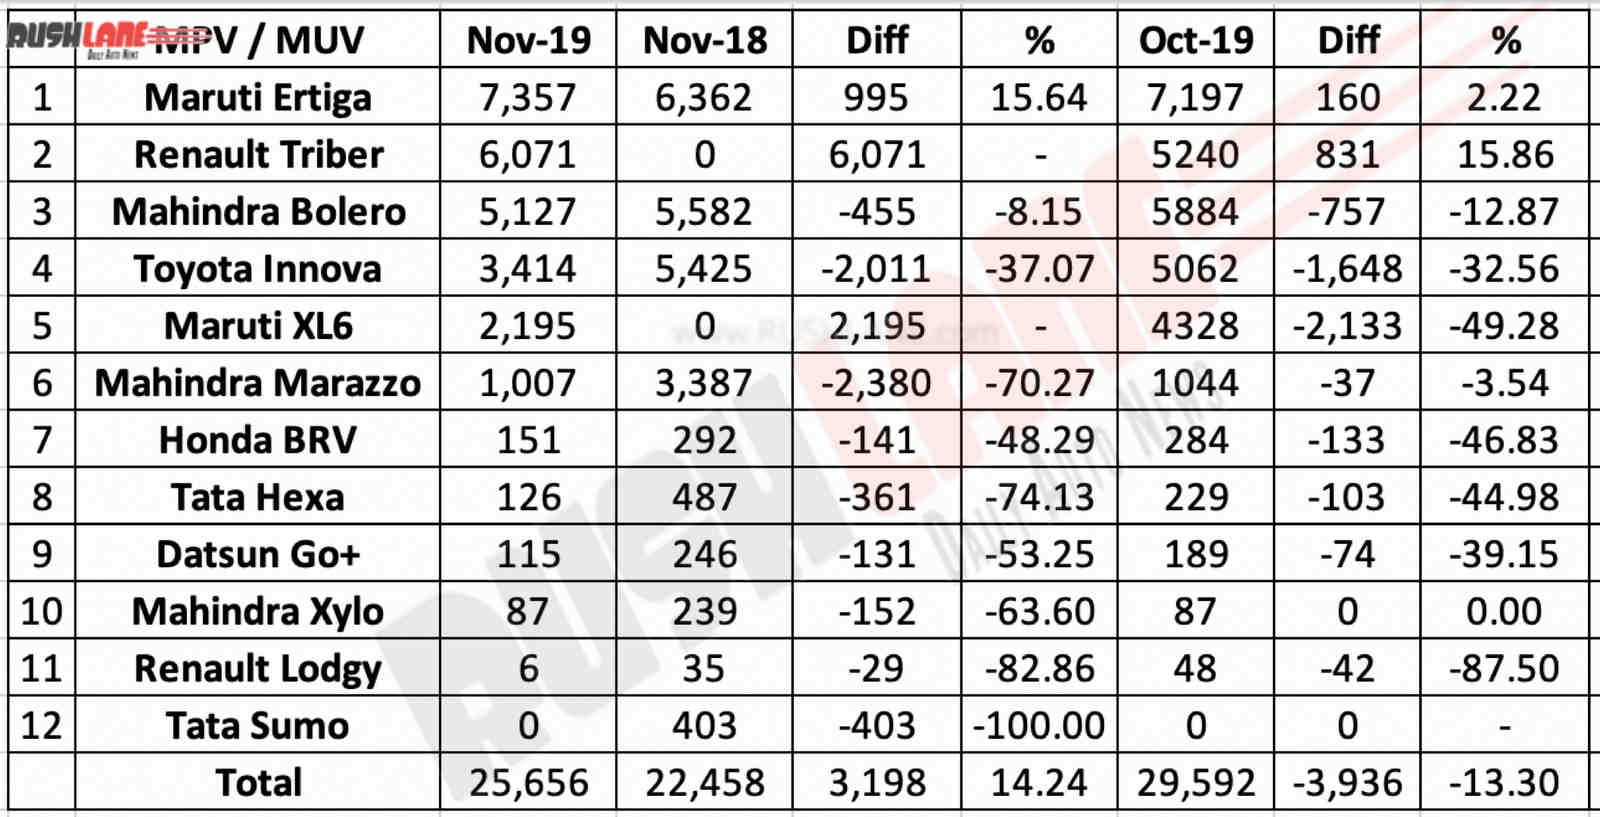 MUV MPV sales Nov 2019